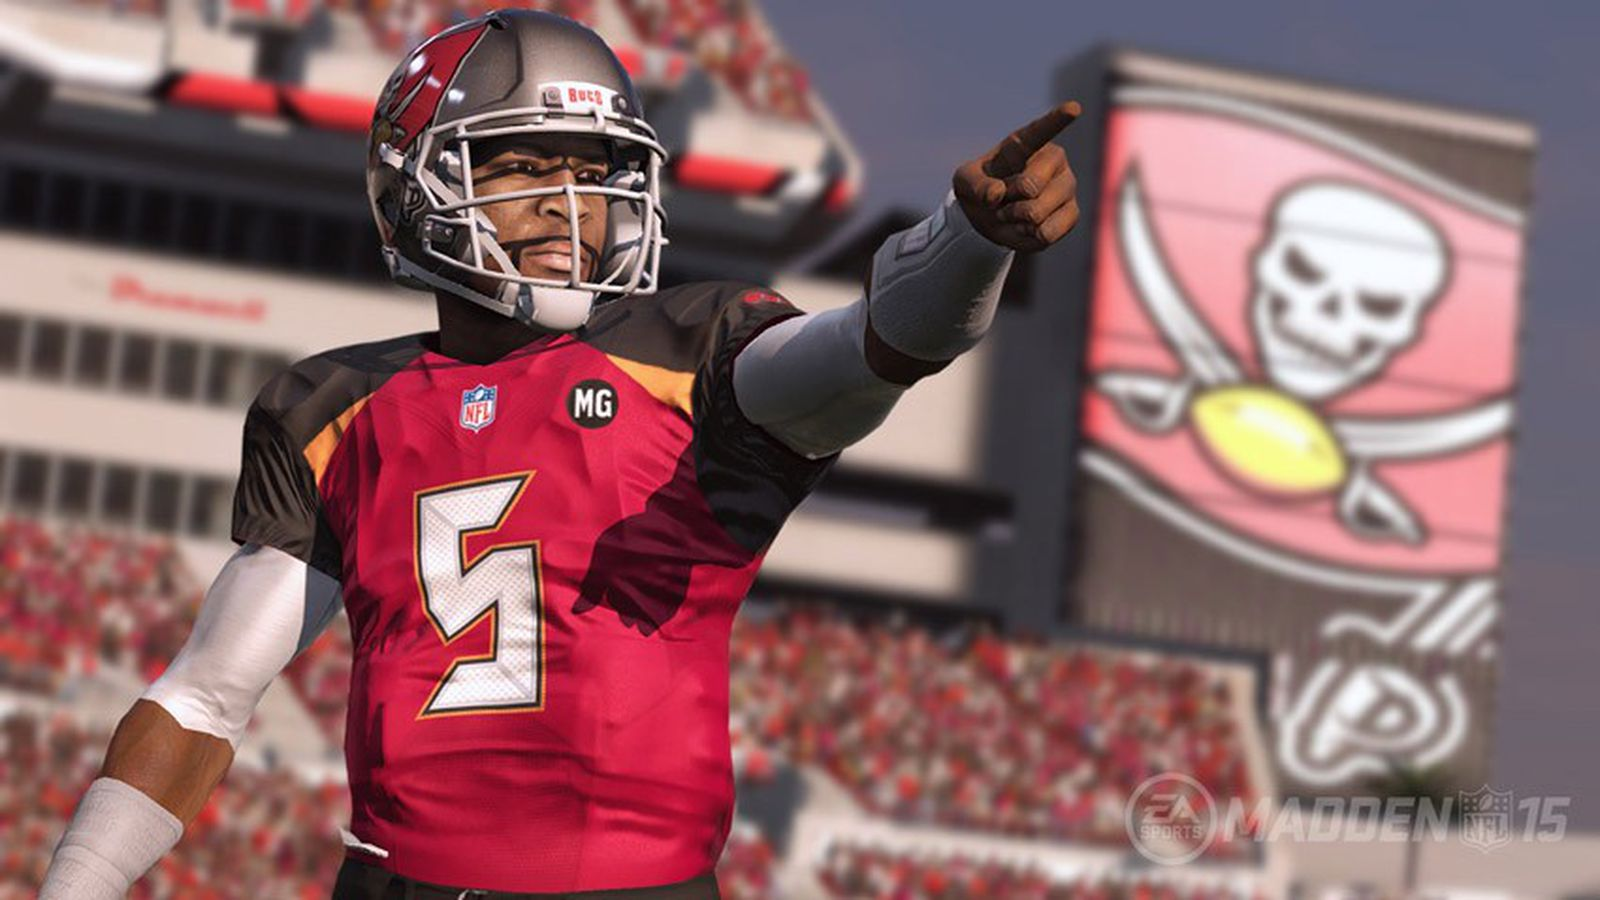 Madden NFL 16 Cover Vote Will Put A Giant Steeler